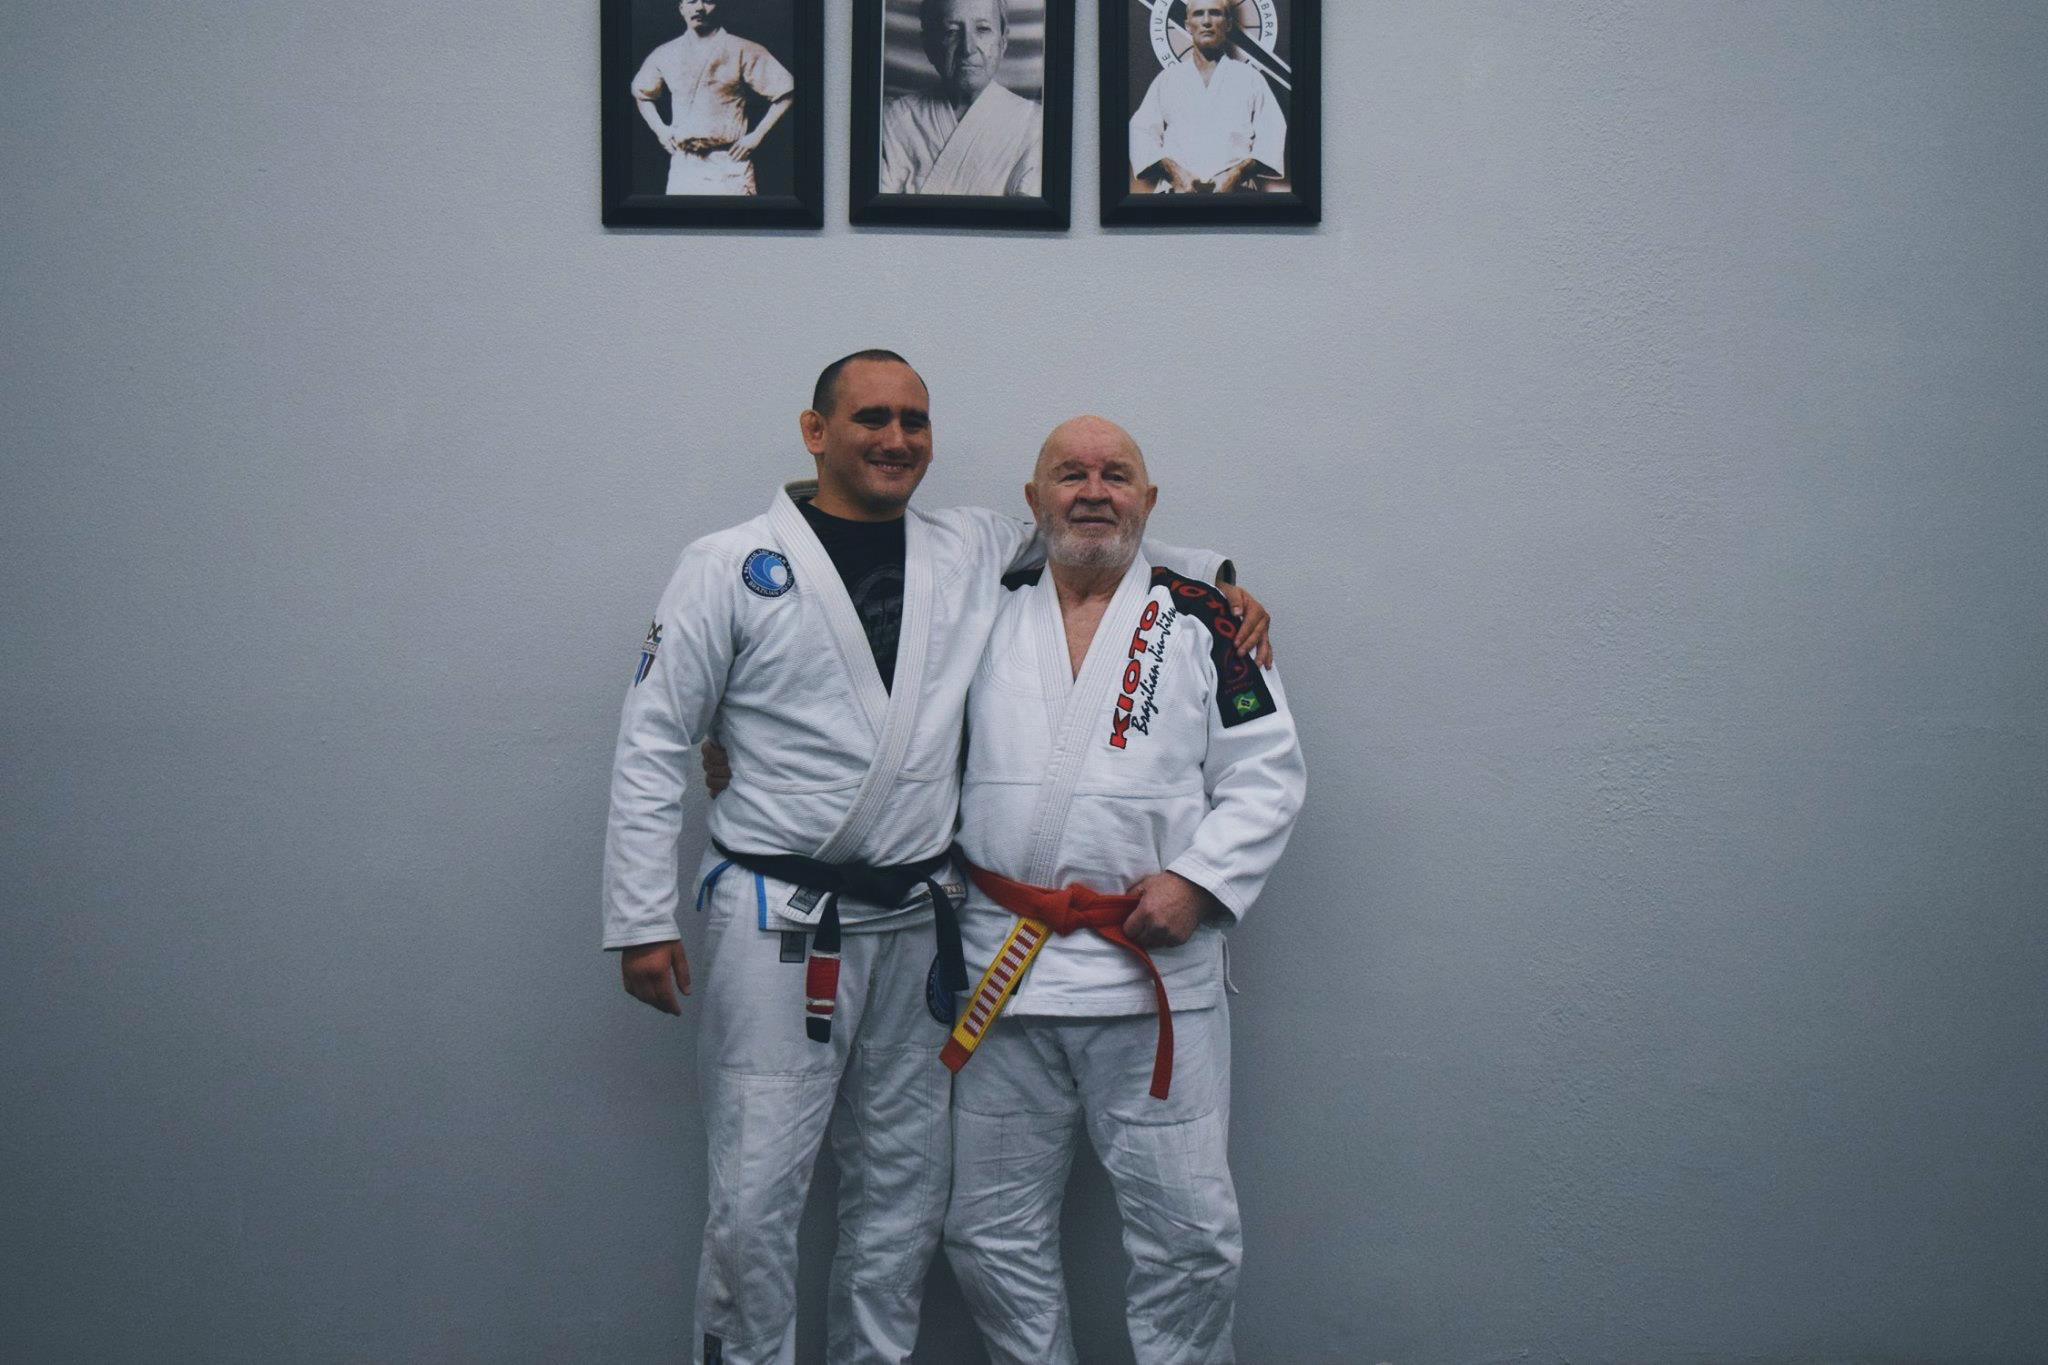 """***Grand Master Kids and Adult Seminar coming up in August at Pacific Top Team Corona*** Master Francisco Mansor (sometimes mentioned as Mansur) is a jiu jitsu red belt (9th degree) who was awarded his instructor's degree by the late Master Helio Gracie (one of only 6 men outside the Gracie family to receive the rank by Helio), being also regarded as one of the most respected men in the sport/martial art. Francisco Mansor founded the Kioto academy in 1965, one of the most traditional Brazilian jiu jitsu schools in the world, a team strongly linked with the self defense aspect of BJJ. Master Mansor and his academy are known for having one of the biggest jiu jitsu academies for youngsters in Rio de Janeiro, from where he produced high end talent such as Alvaro Mansor (his nephew) Augusto """"Tanquinho"""", Carlos Henrique, Claudio França, Joe Moreira and many others."""